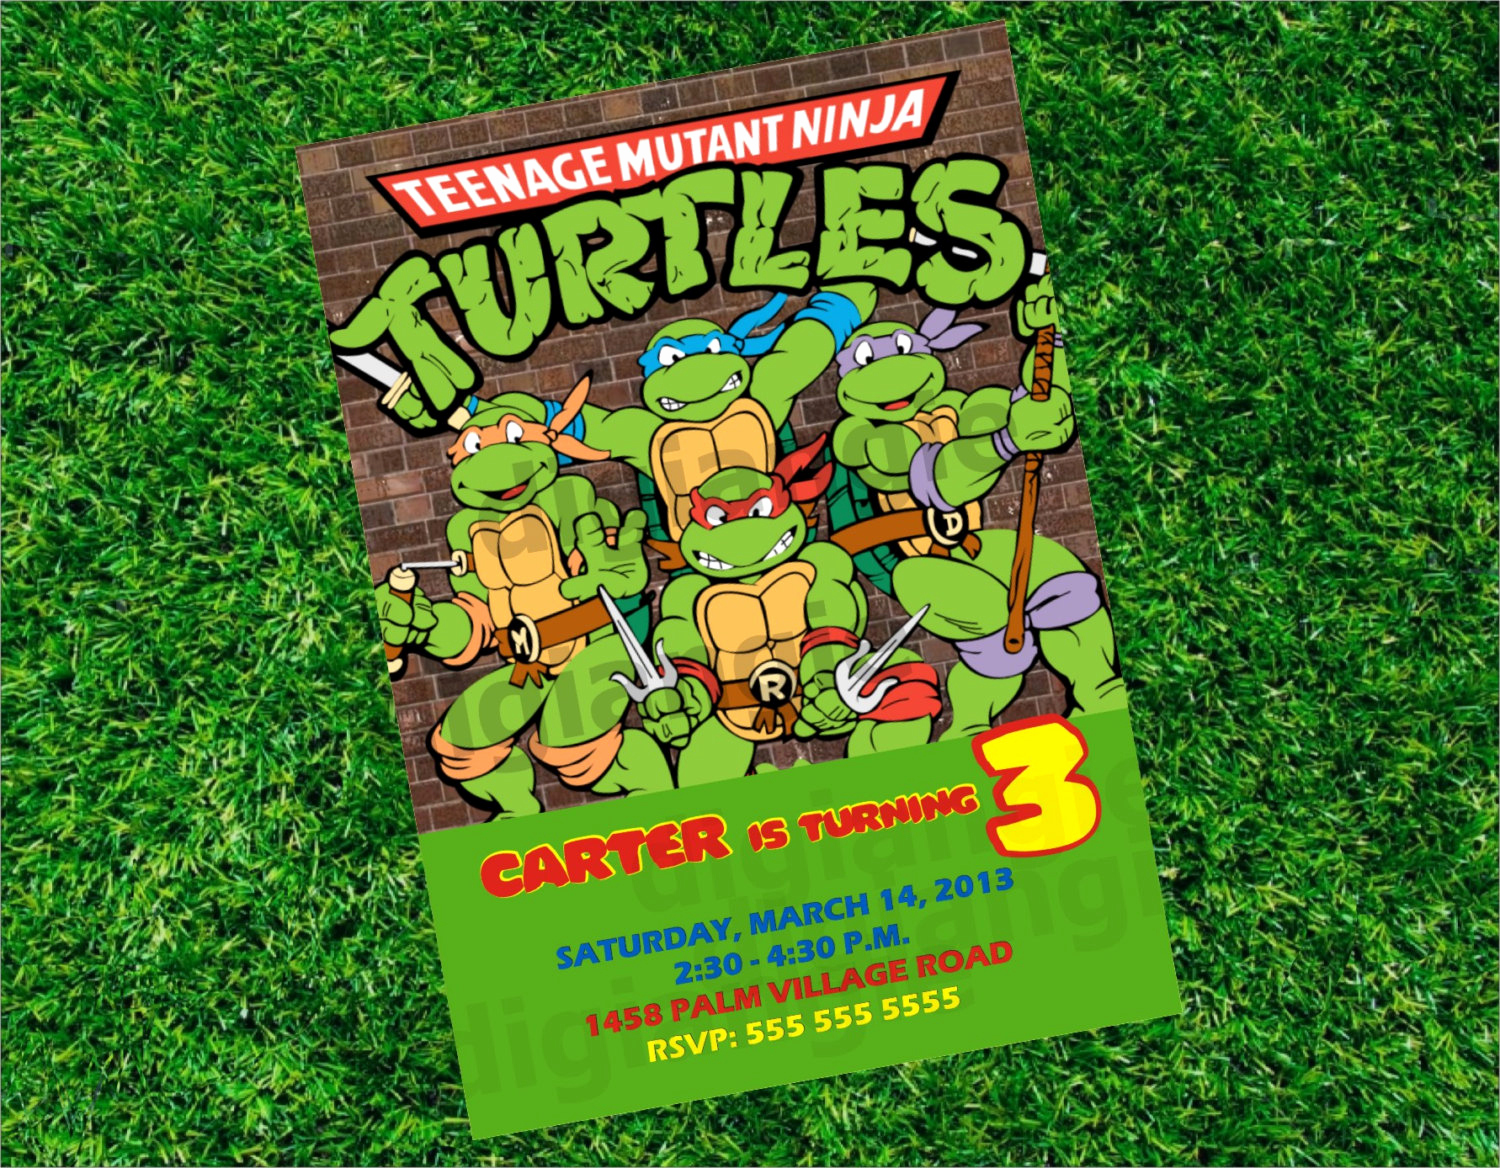 Ninja Turtles Birthday Invitation Elegant Teenage Mutant Ninja Turtles Birthday Invitations Ninja